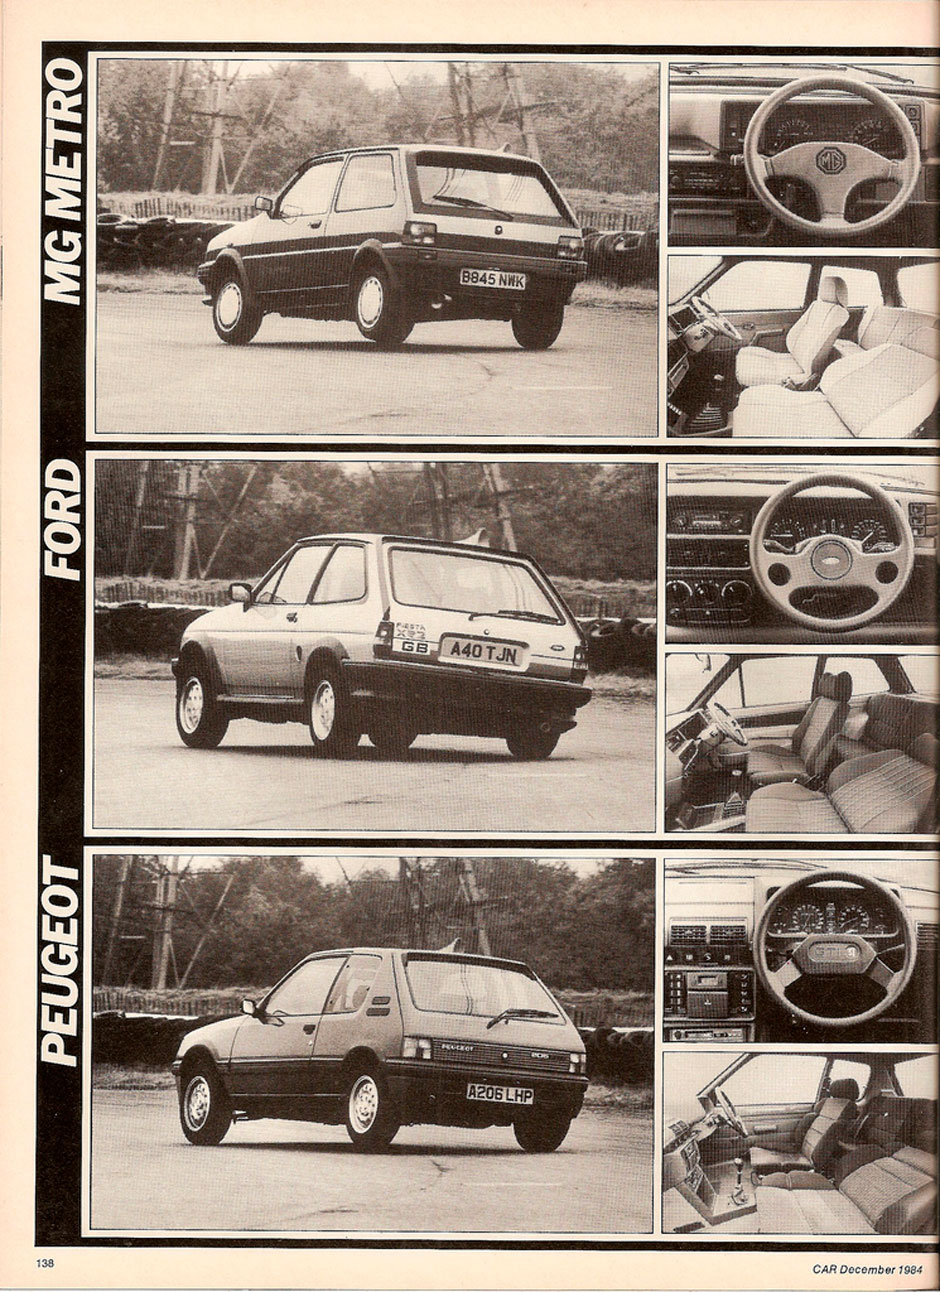 Ford Fiesta XR2, MG Metro 1300 Turbo и Peugeot 205 1.6 GTi